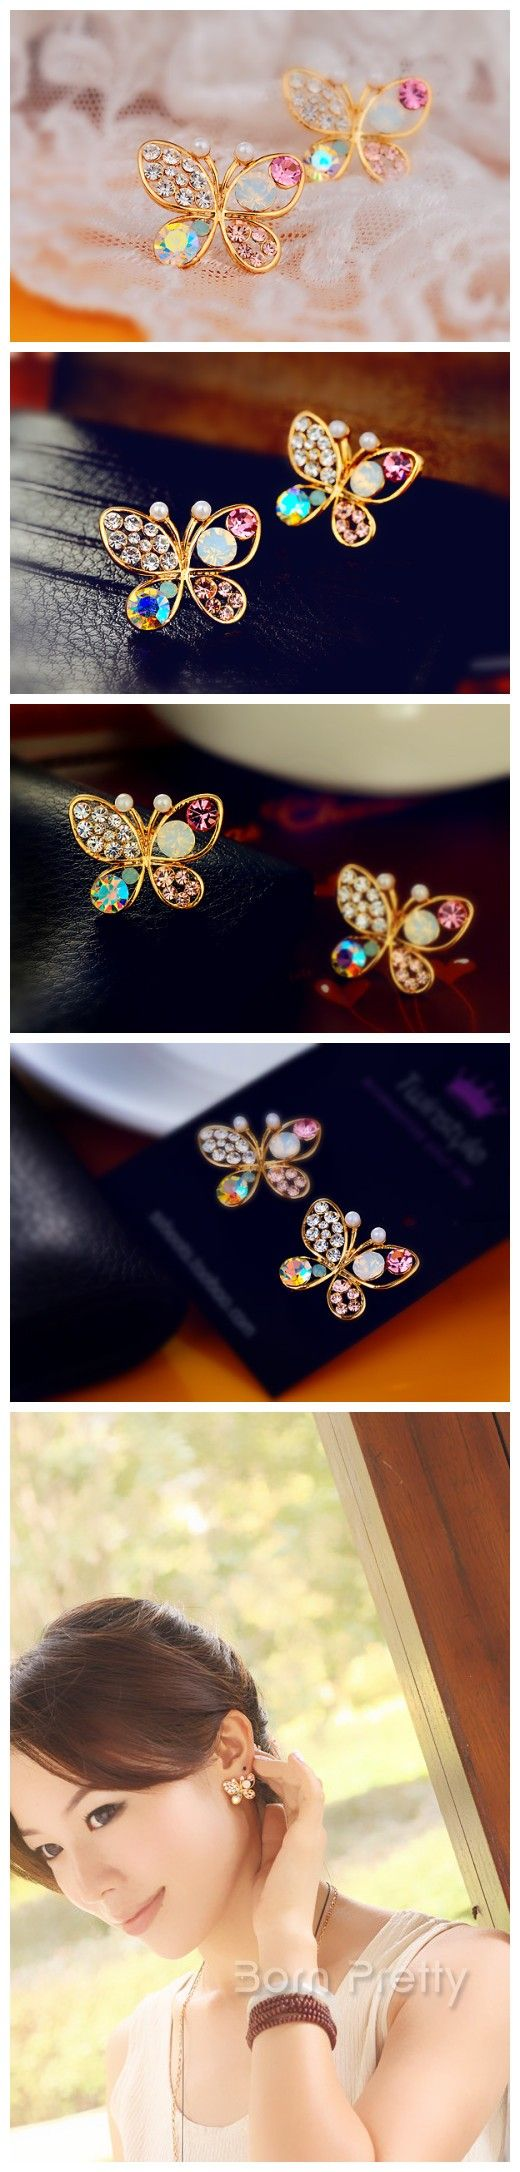 $2.78 Earring Ear Stud Fashion Dazzling Coloful Rhinestone Pearl Hollow Butterfly Design - BornPrettyStore.com